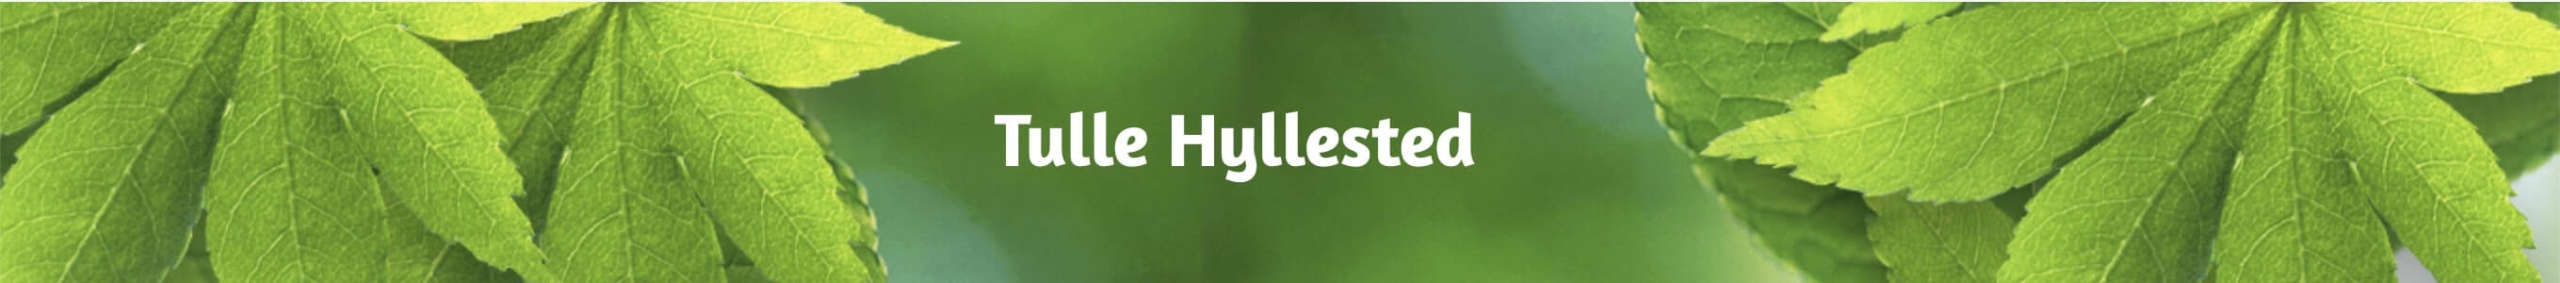 tulle hyllested